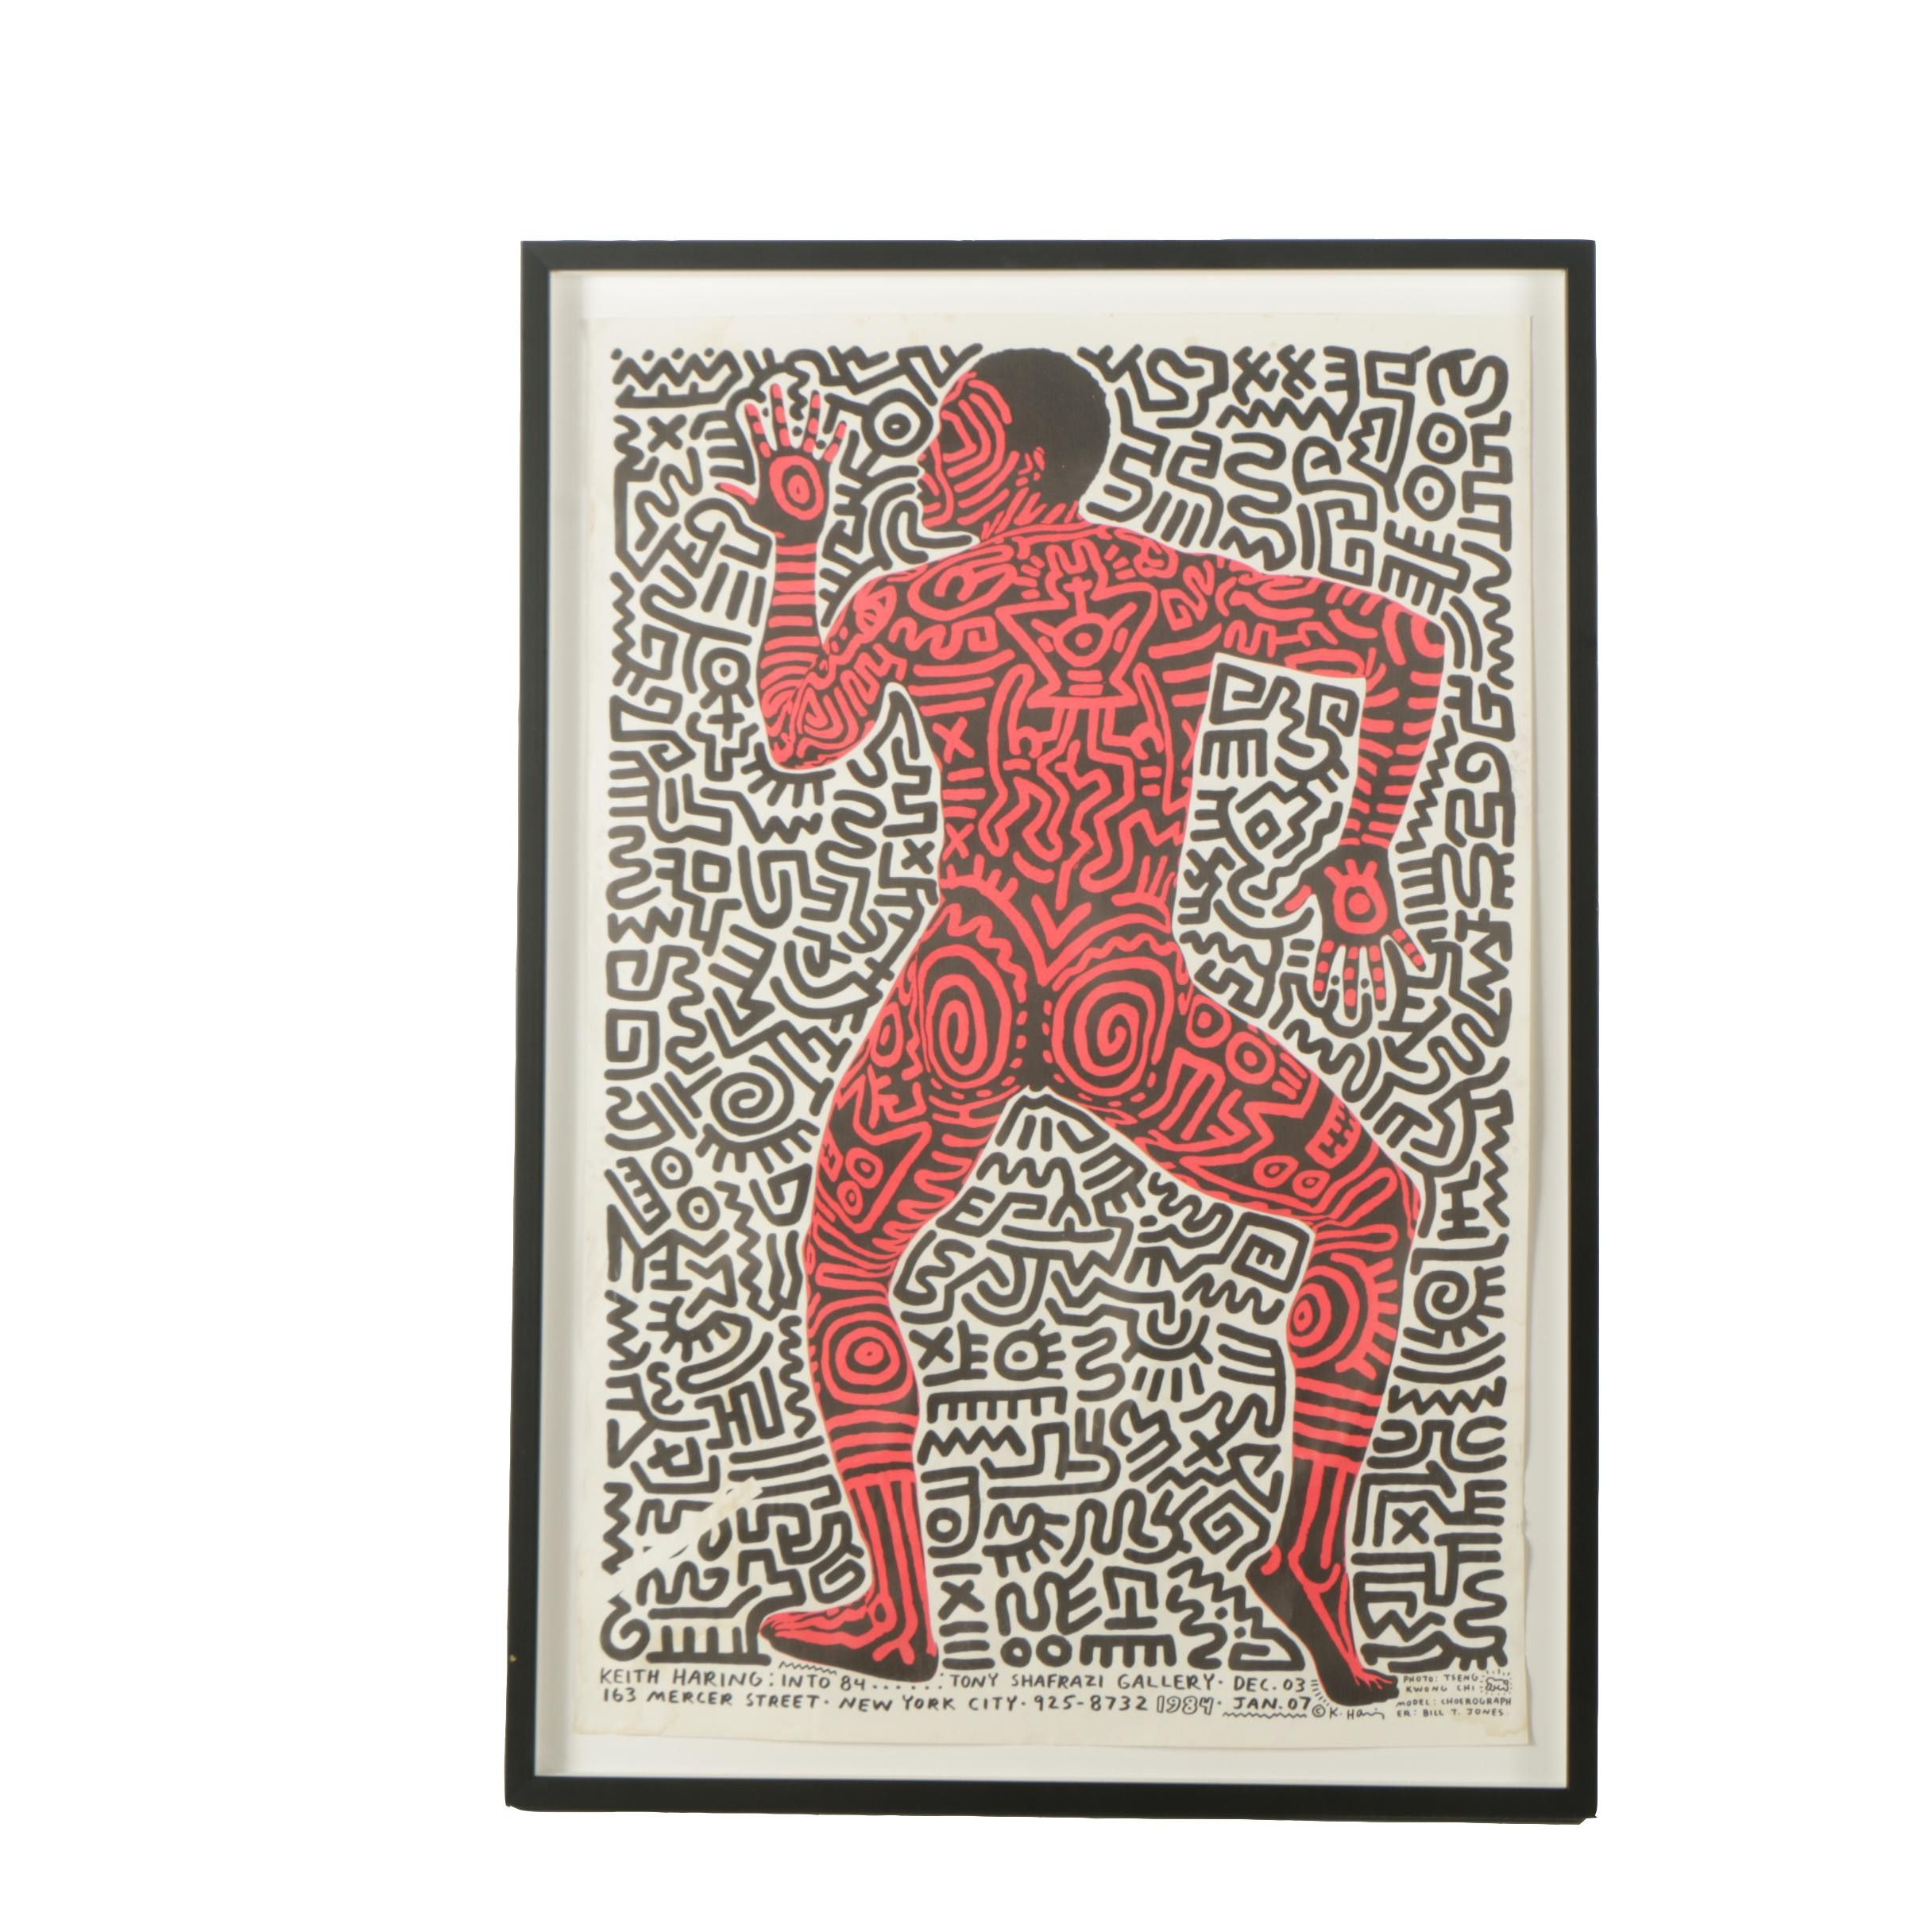 "Exhibition Lithograph Poster Designed by Keith Haring ""Keith Haring: Into 1984"""